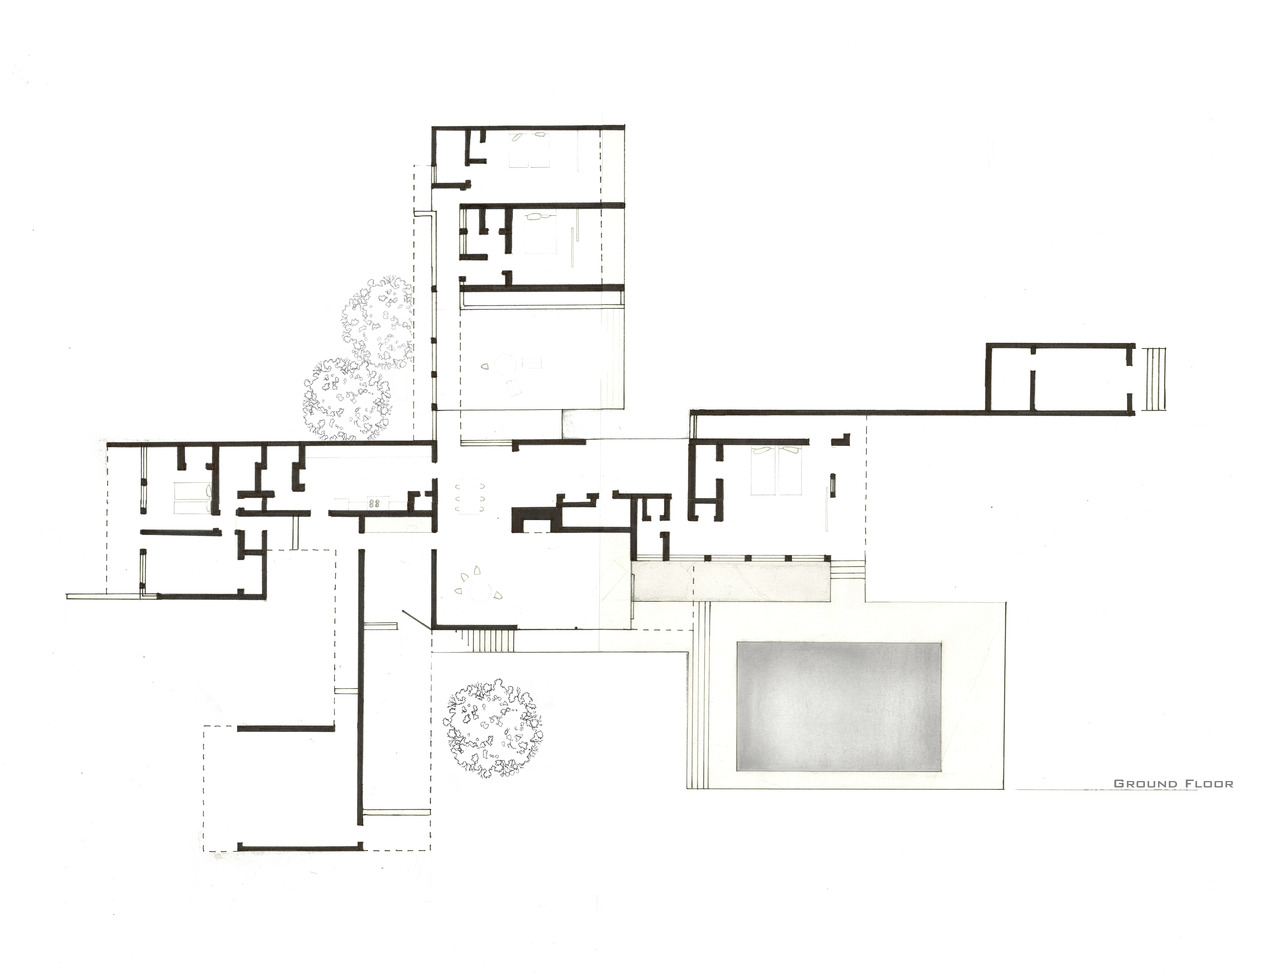 1000 images about plans on pinterest richard neutra for Design own house plan